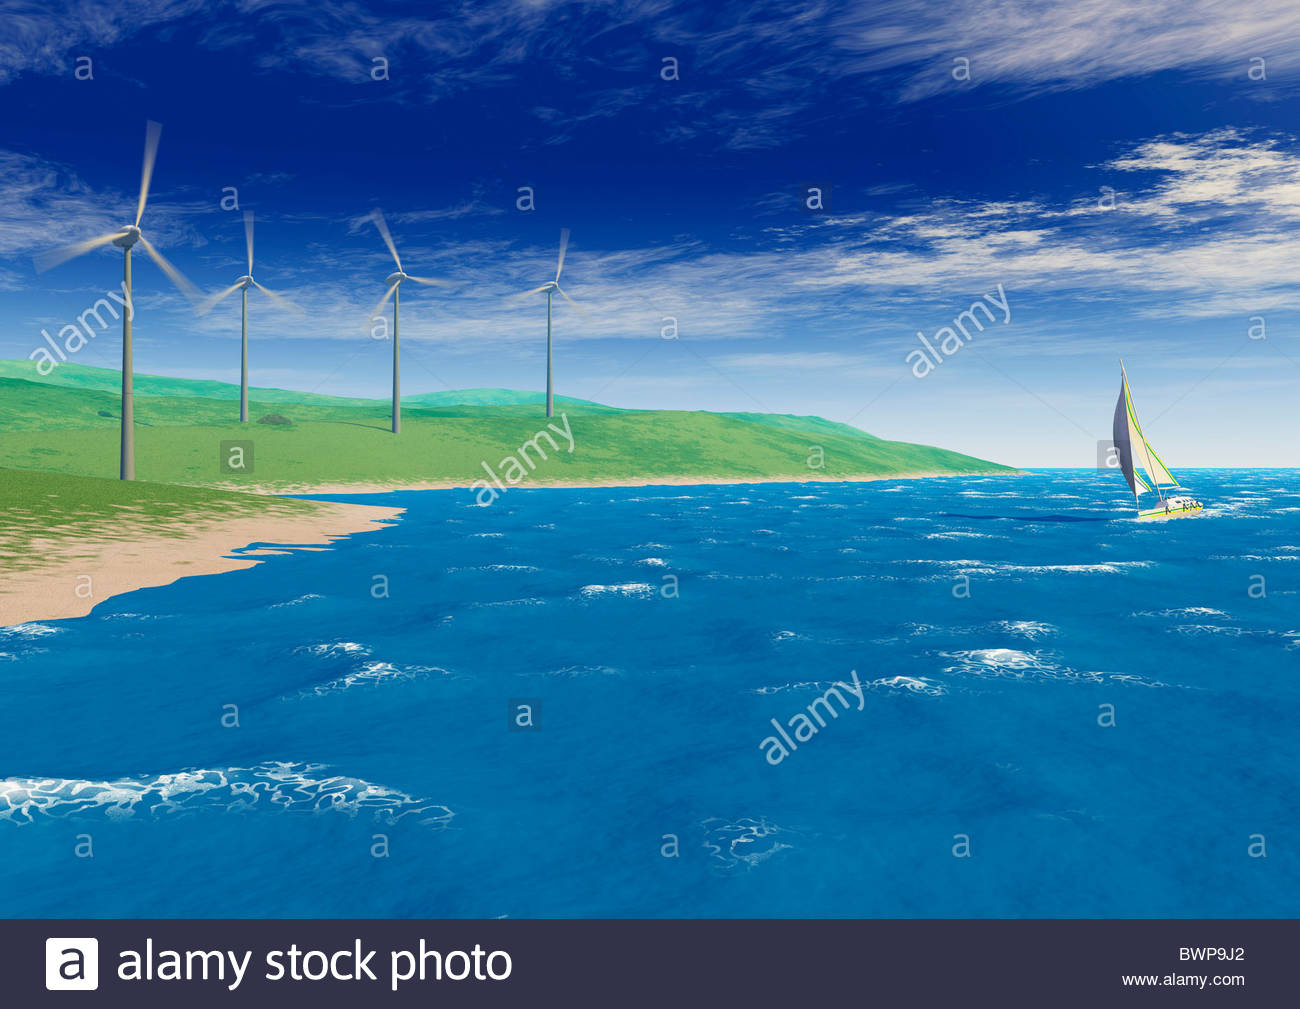 Sailboat in ocean wind turbines turning on shore - Stock Image